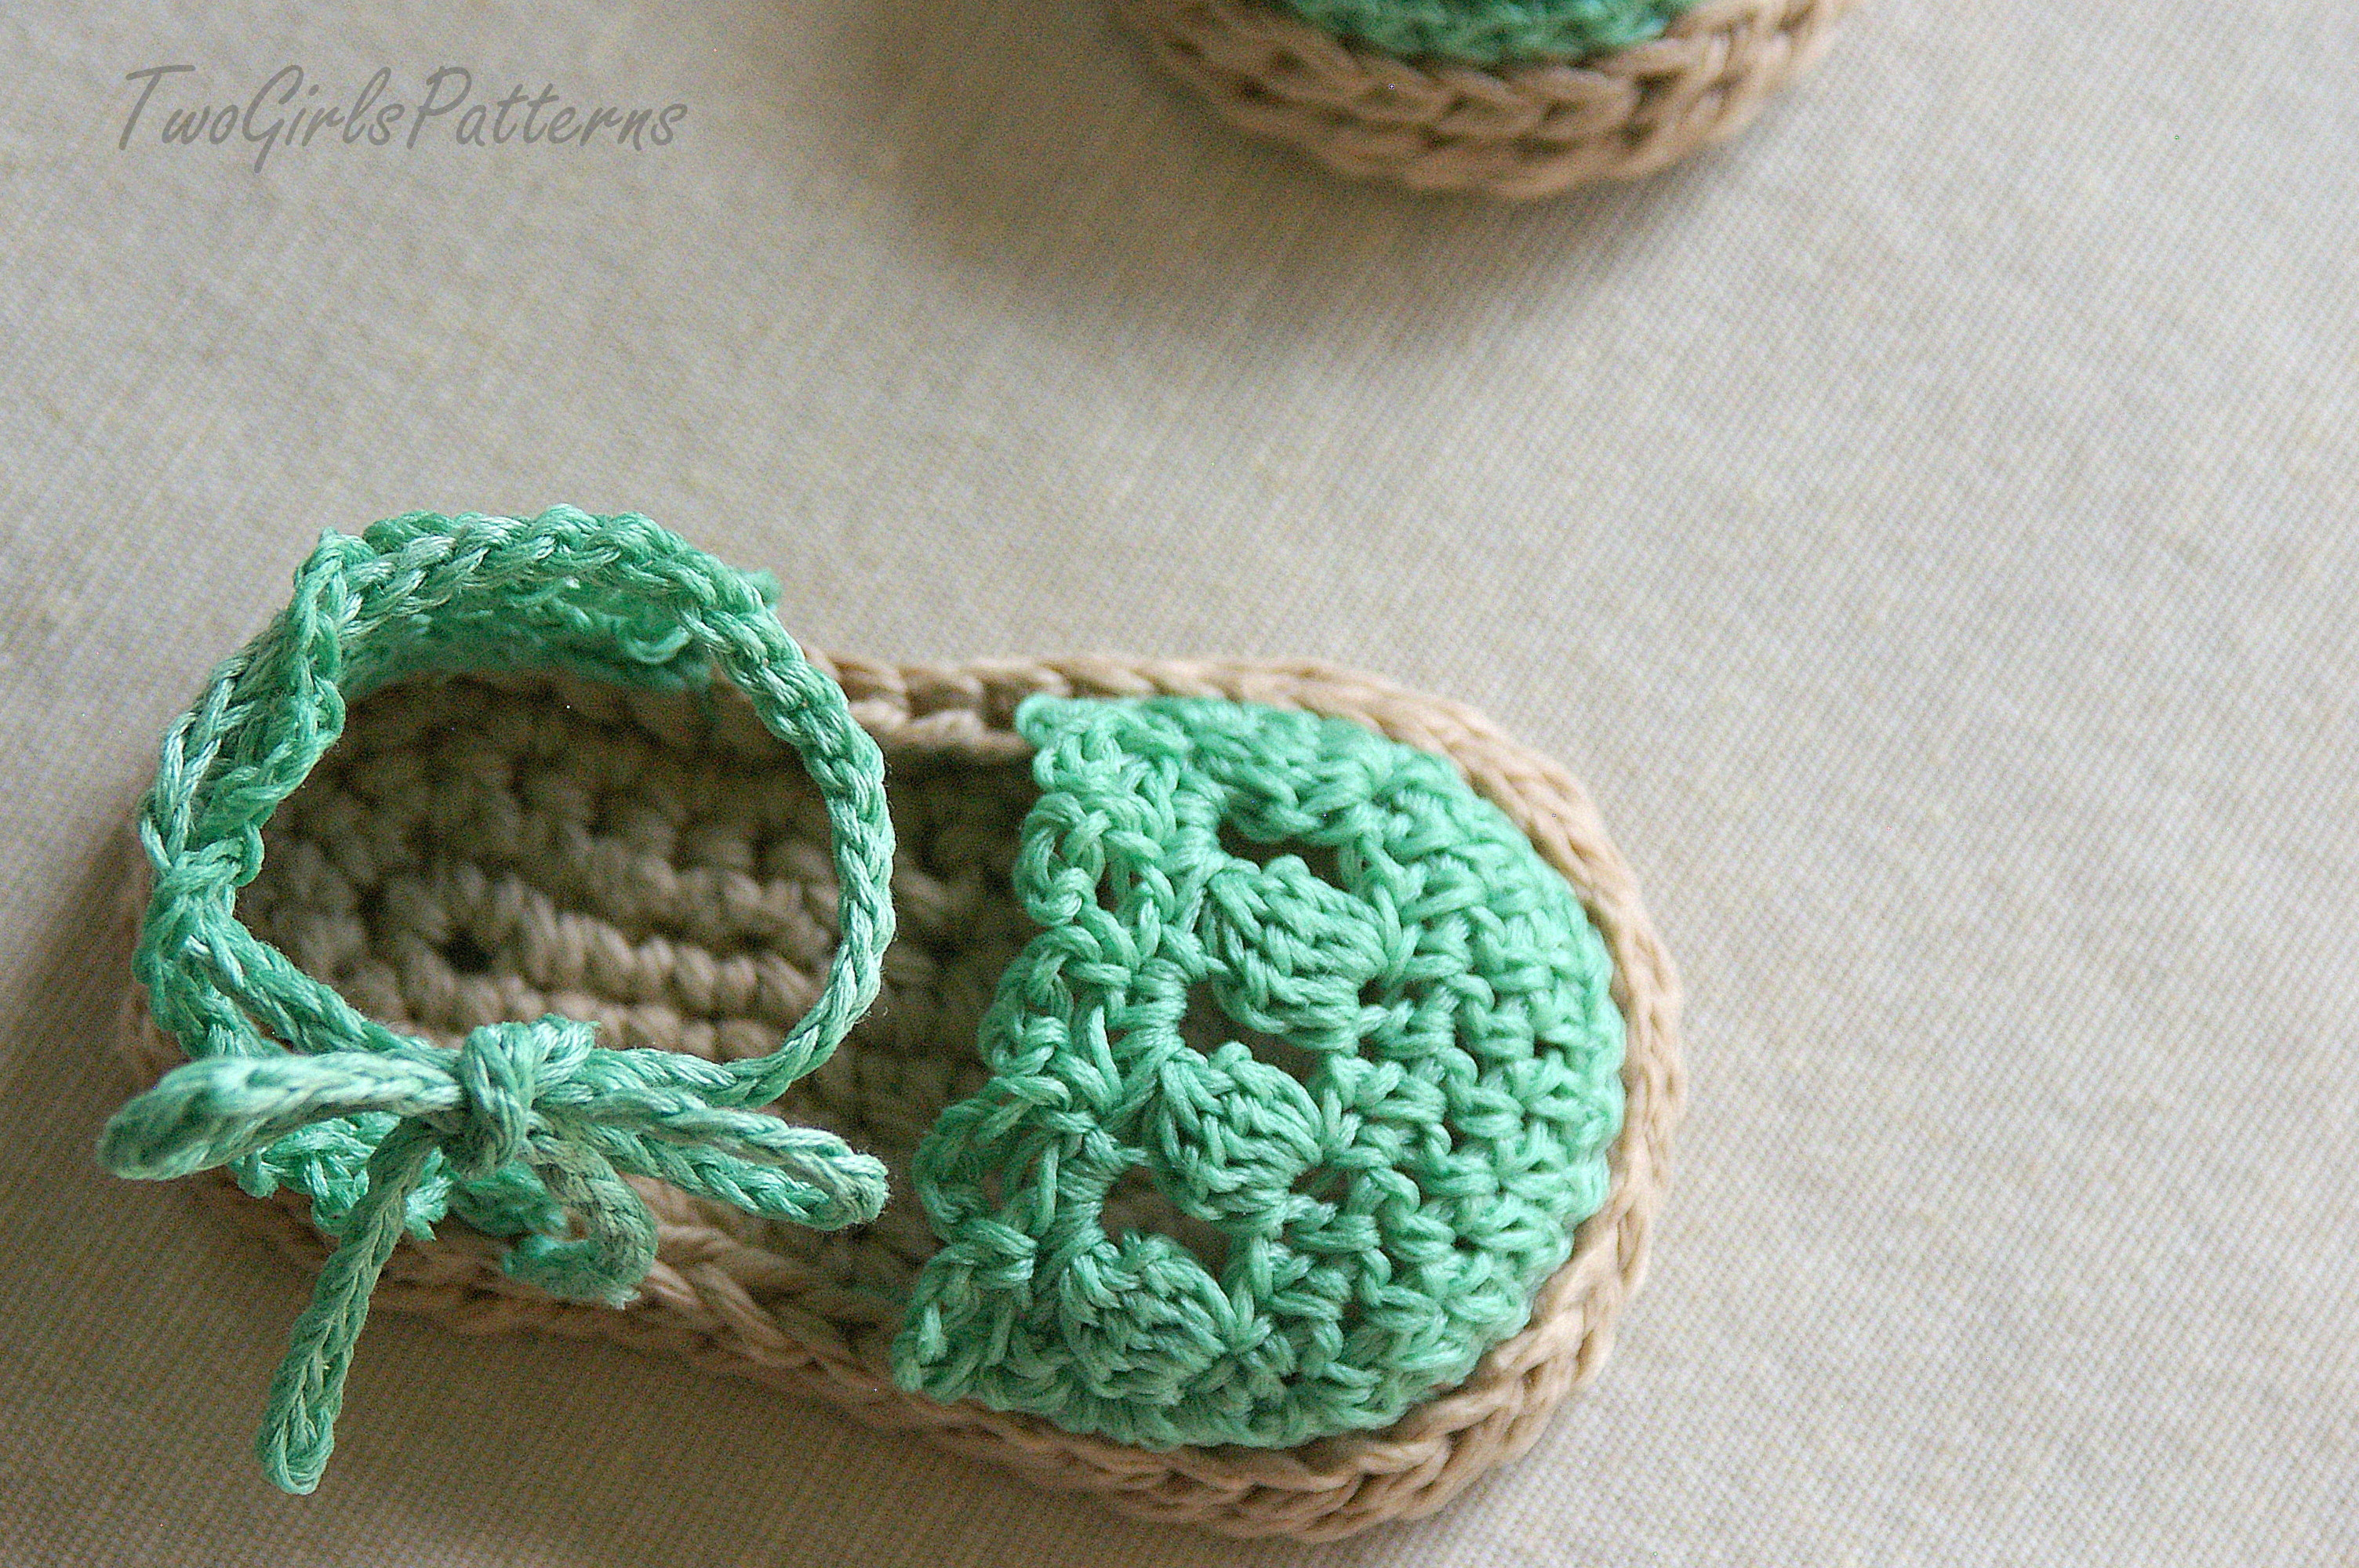 Crochet Baby Sandals Inspirational Crochet Pattern for Baby Espadrille Sandals Crochet Of New 46 Models Crochet Baby Sandals